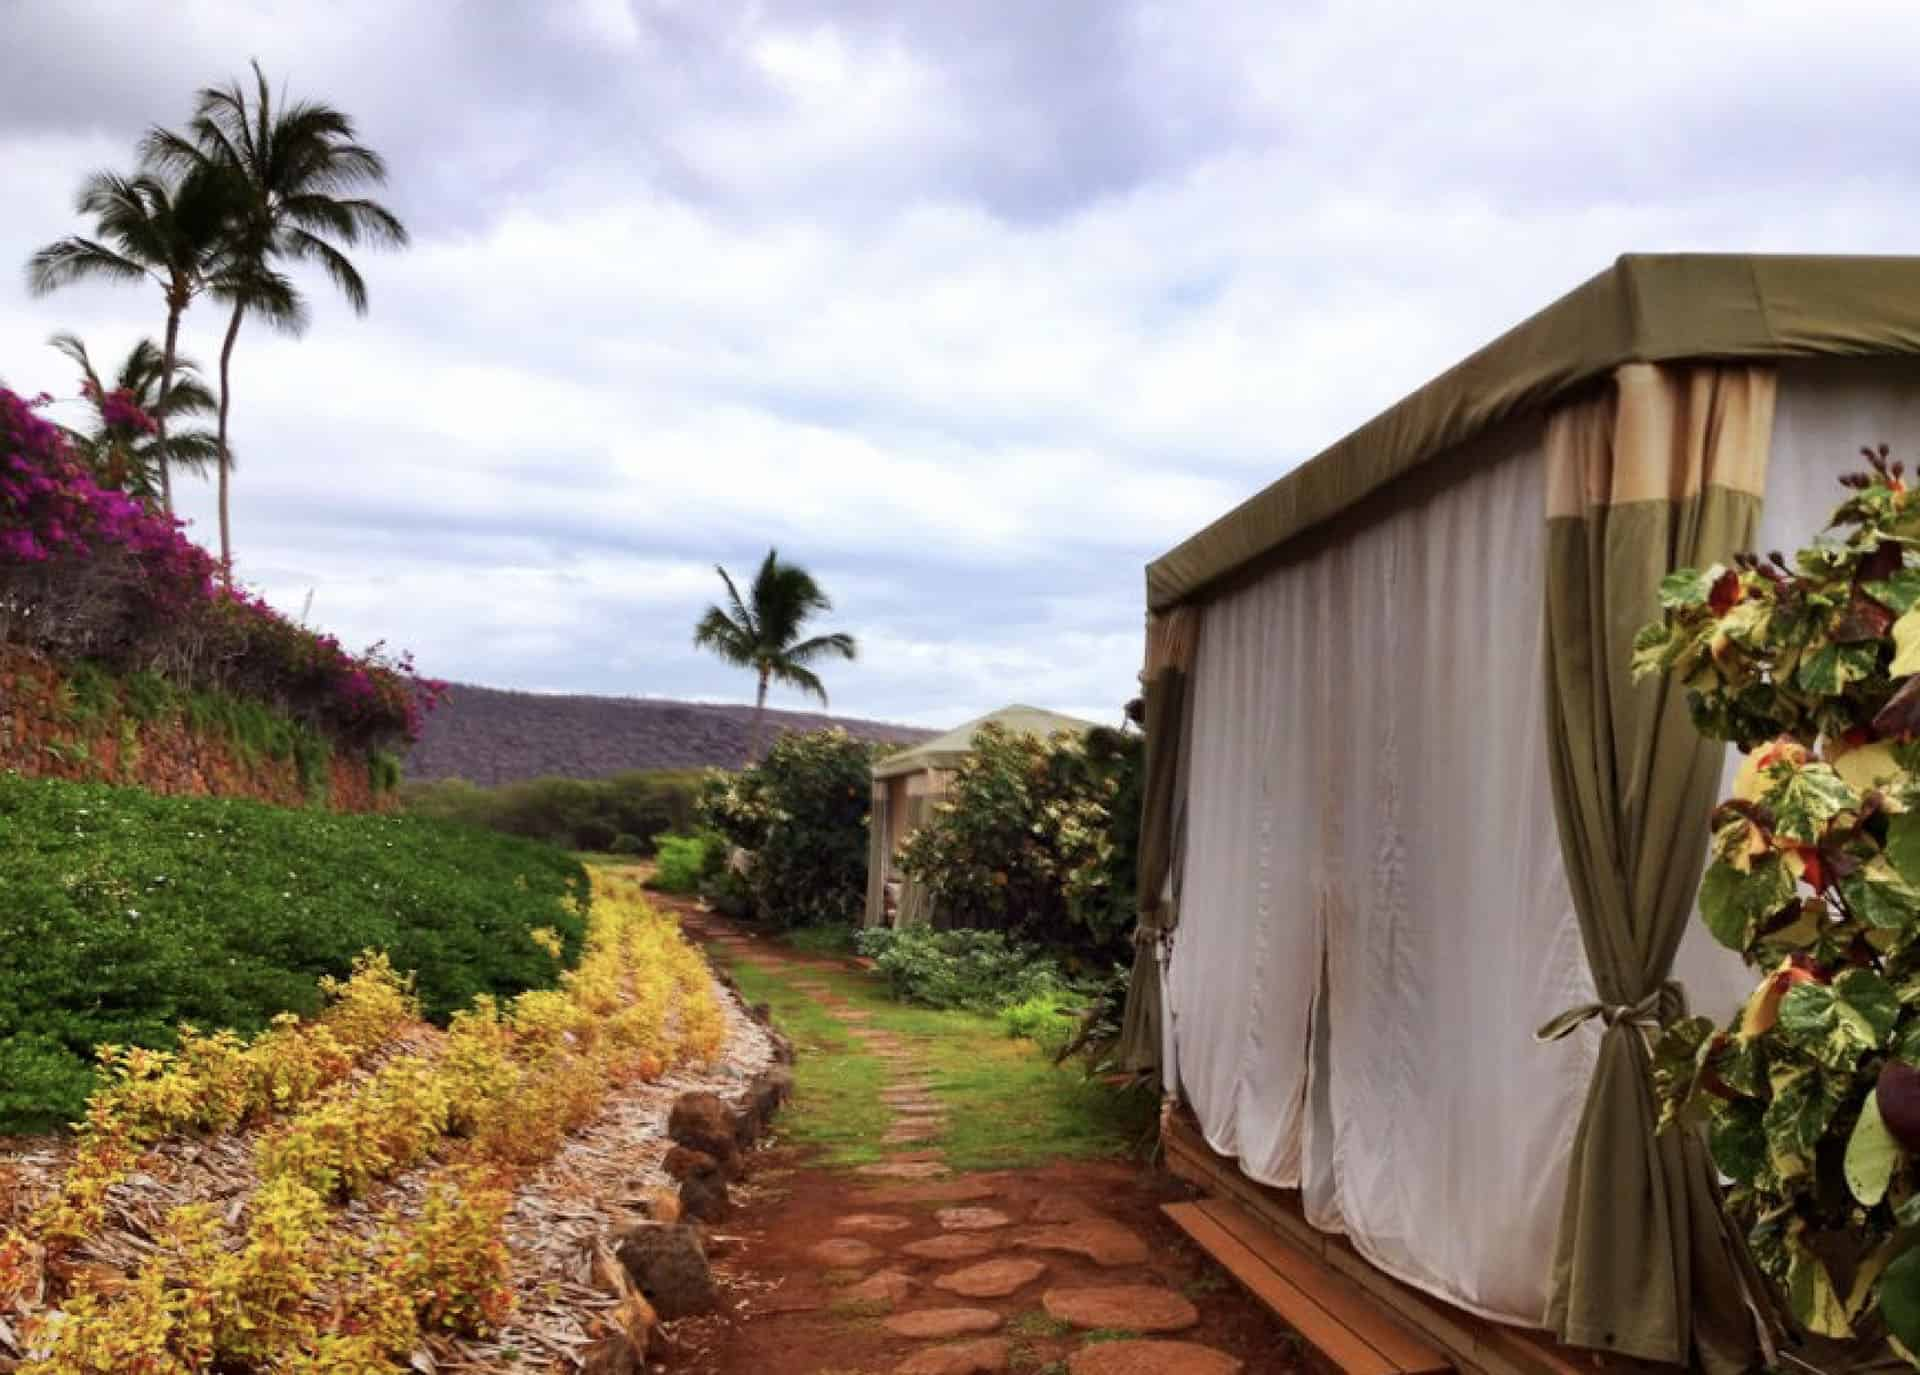 romantic things to do in lanai - spa at manele bay